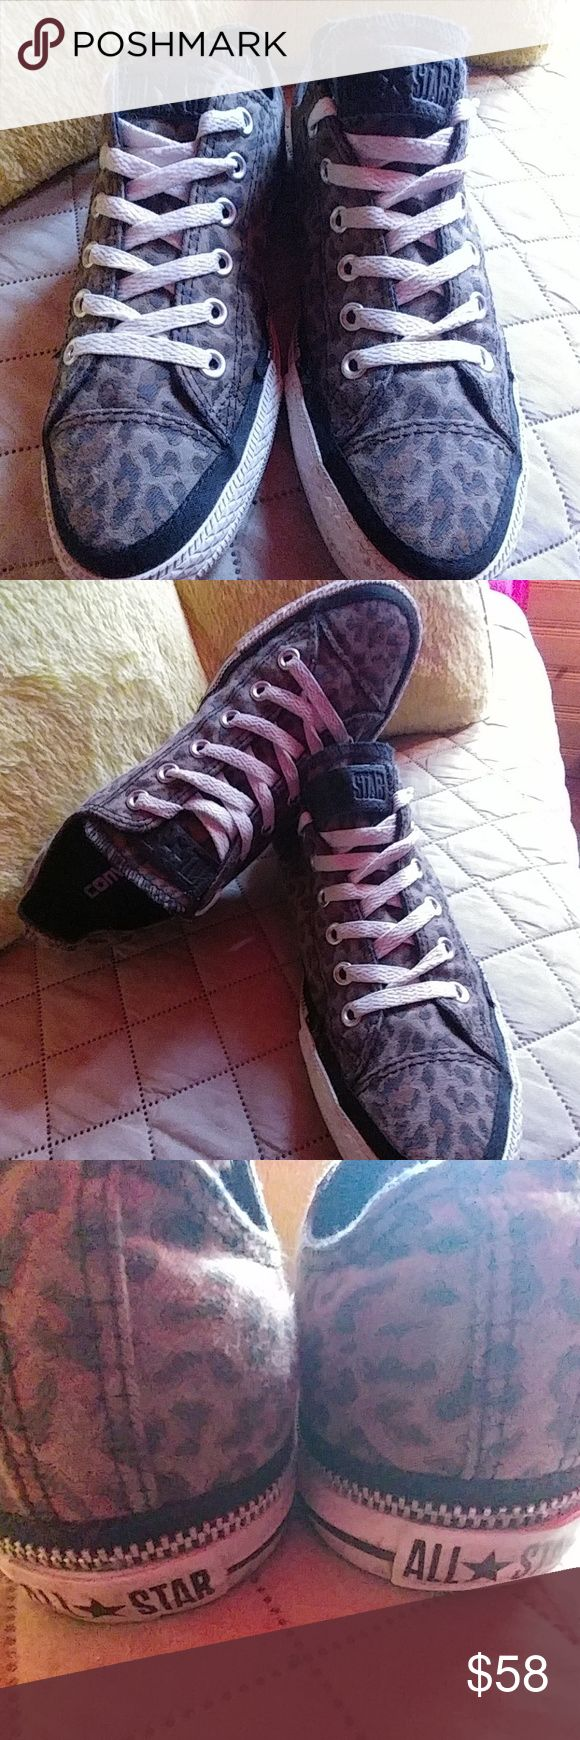 Men's sz 9 1/2 Brown Camo CONVERSE ALL STAR shoes. Men's sz 9 1/2 Brown Camo type pattern CONVERSE ALL STAR shoes. These shoes have a zipper all around the bottom of each shoe. Any questions please feel free to contact me. Converse Shoes Athletic Shoes